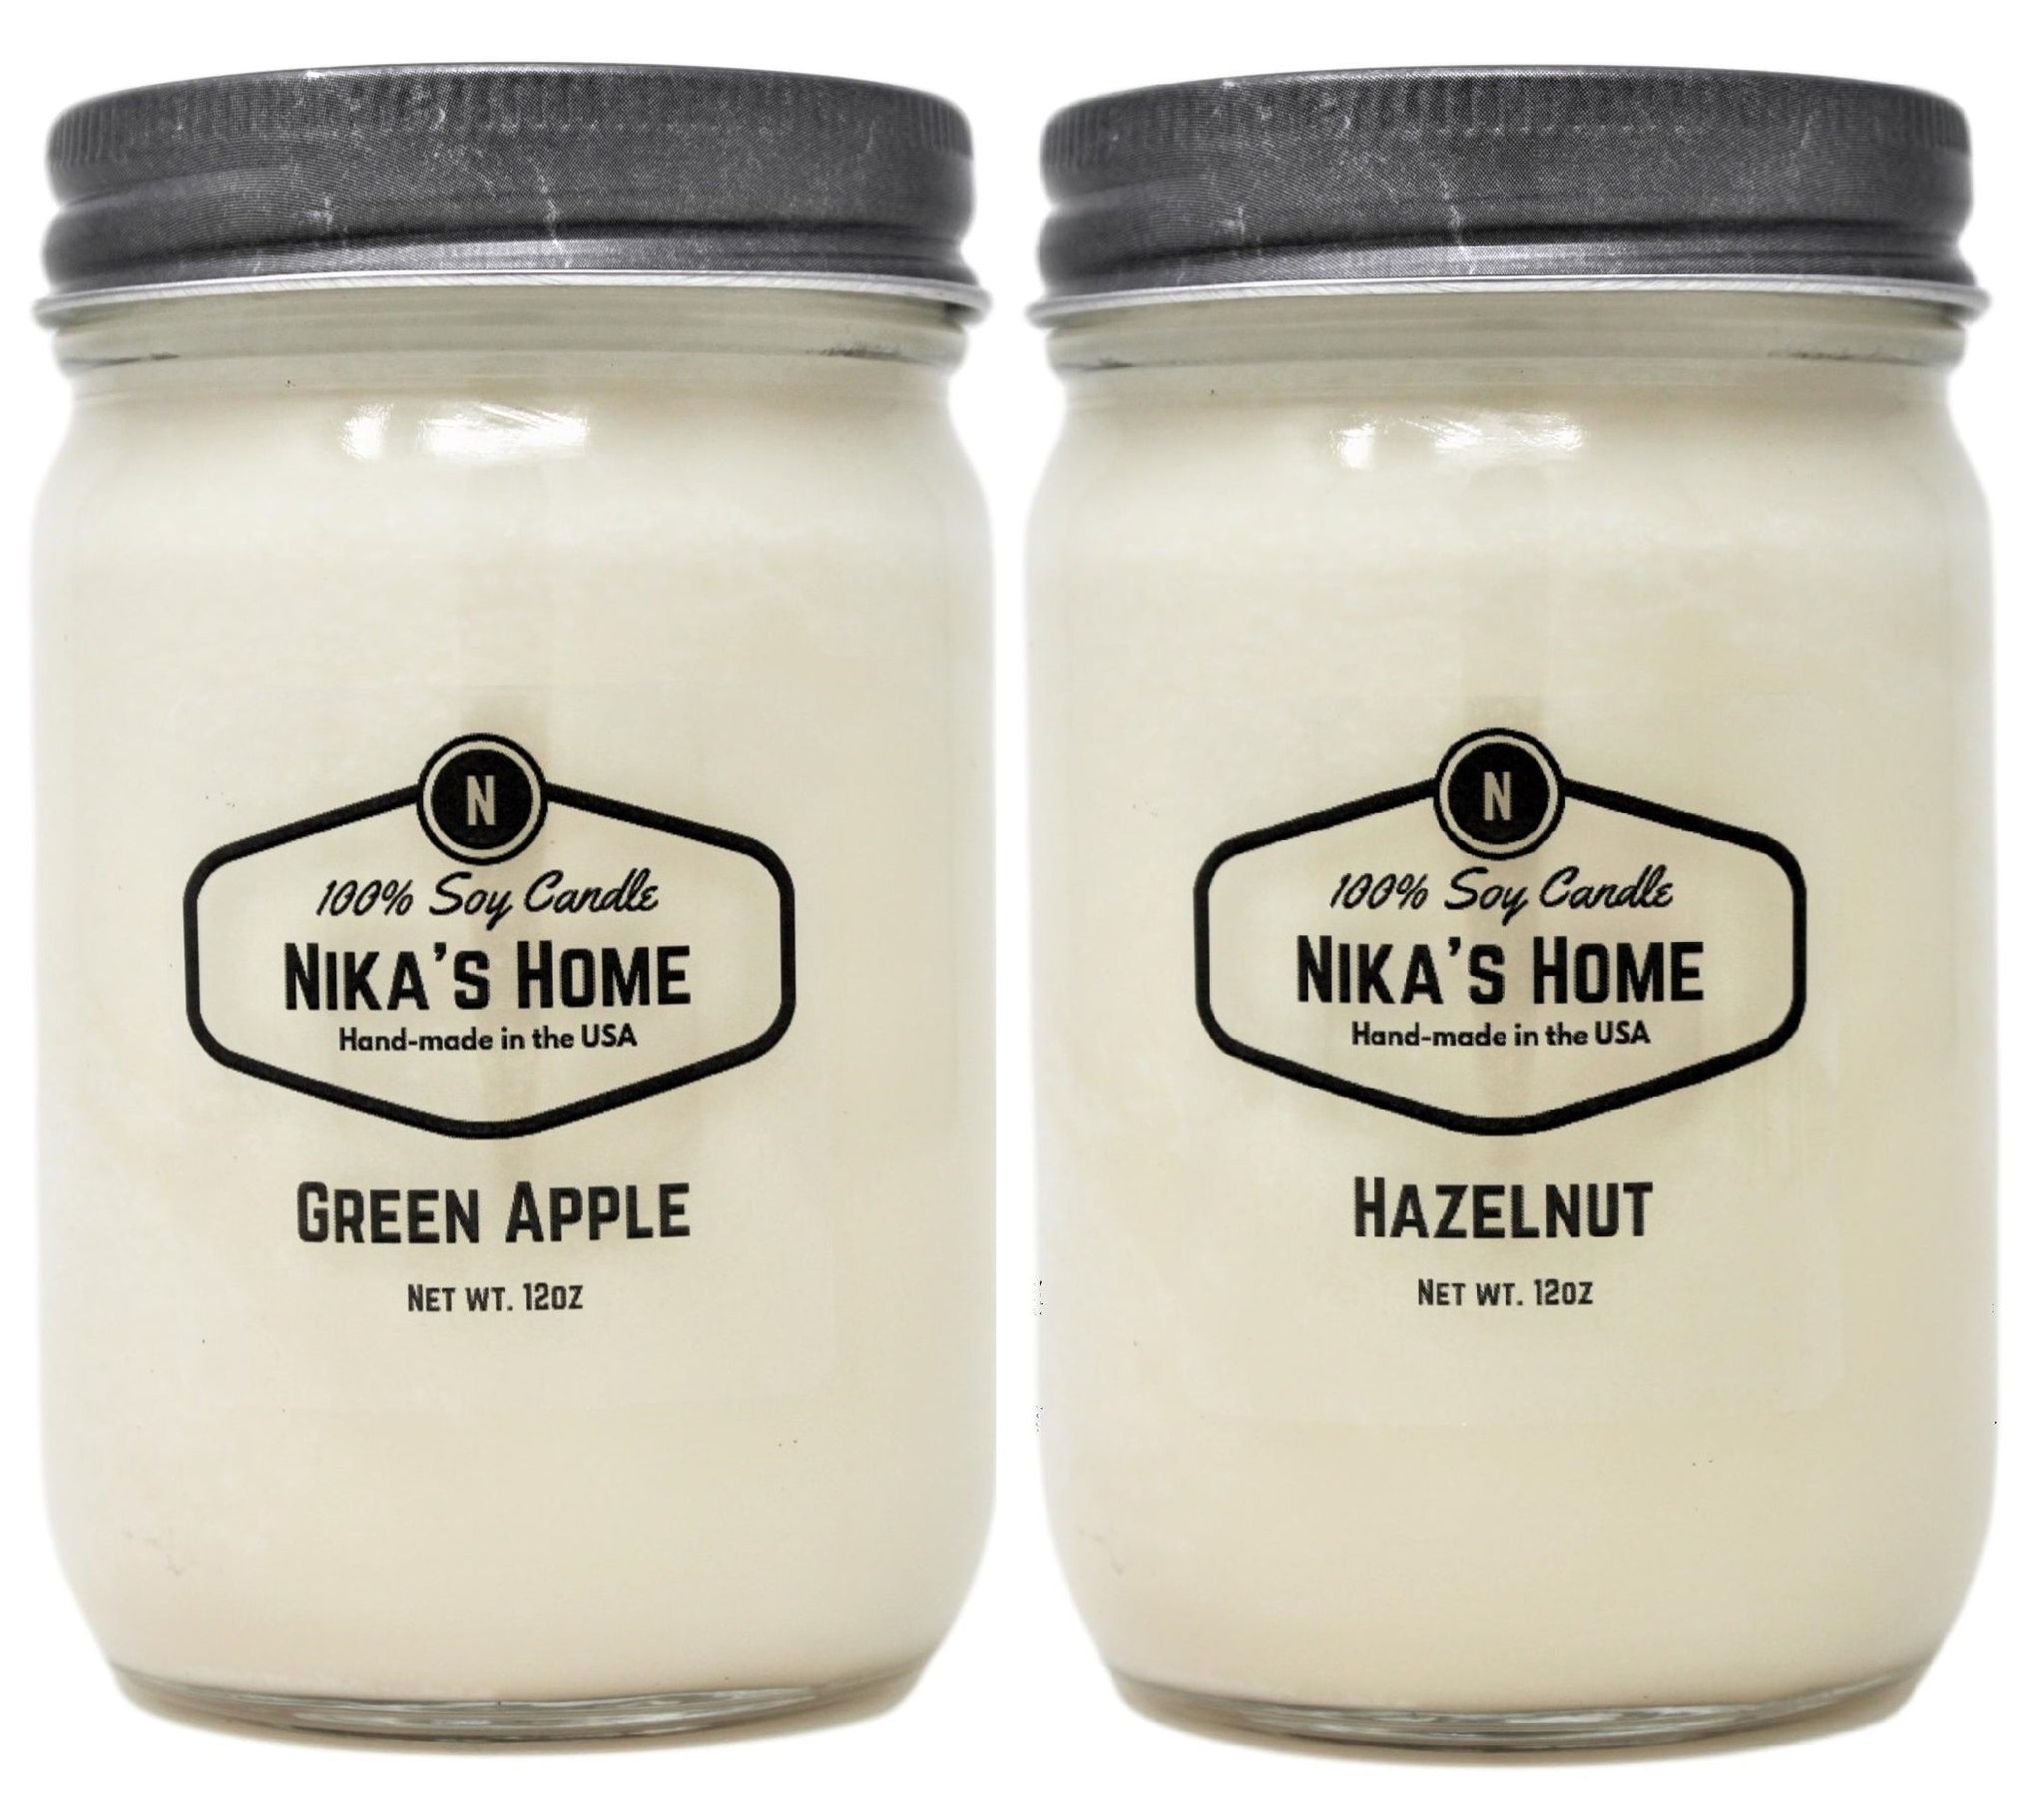 Growing the product line by two delightful scents: Green Apple and Hazelnut.